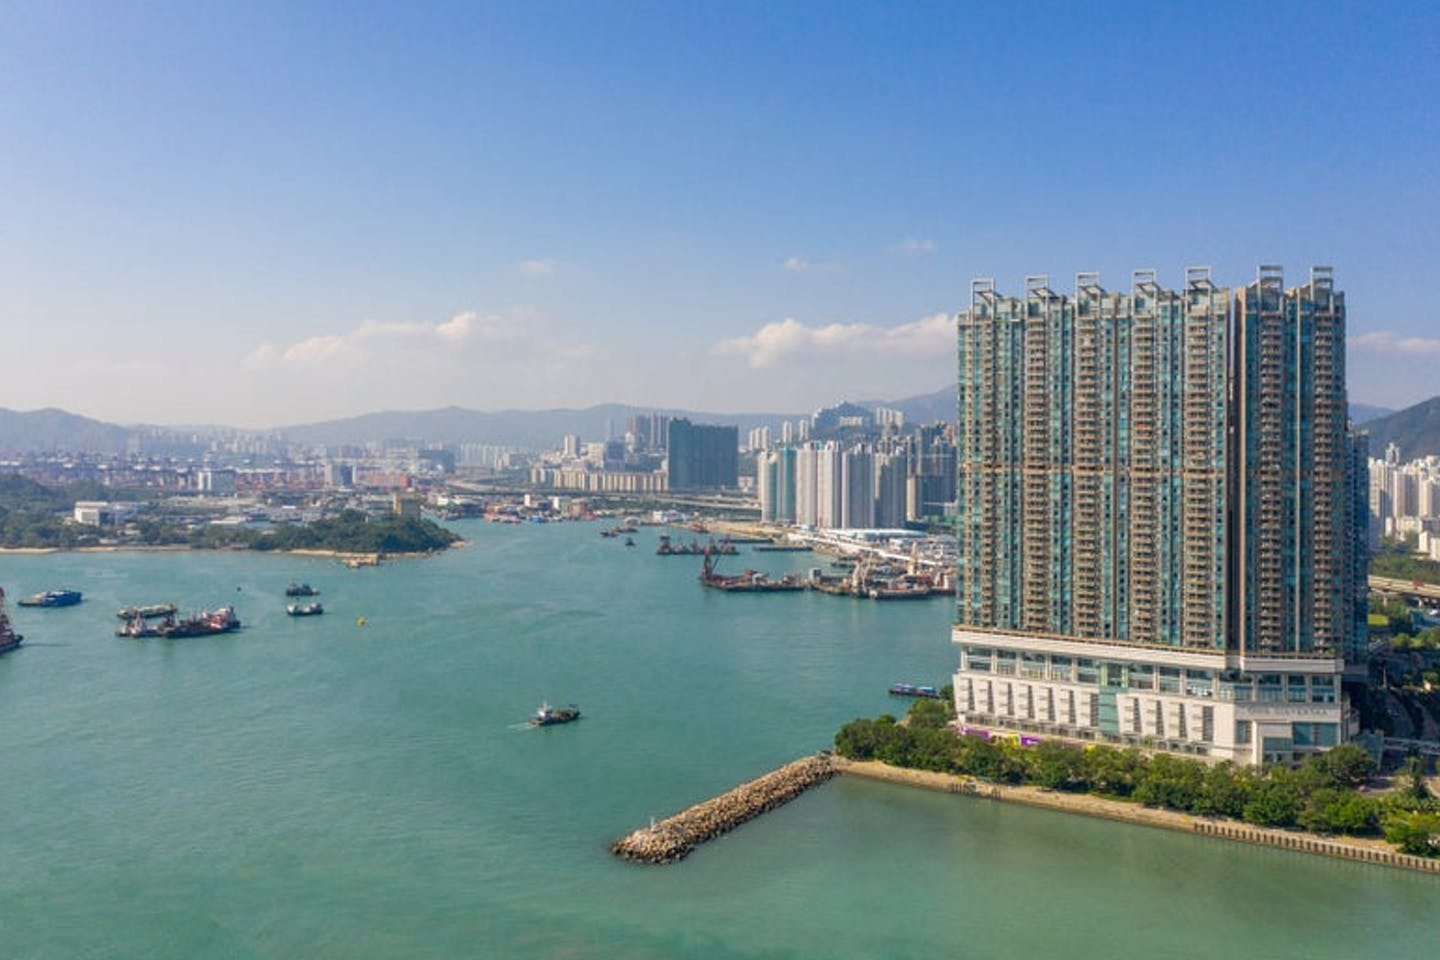 Sino Land joins hands with Hong Kong University of Science & Technology to strive for net zero carbon by 2050